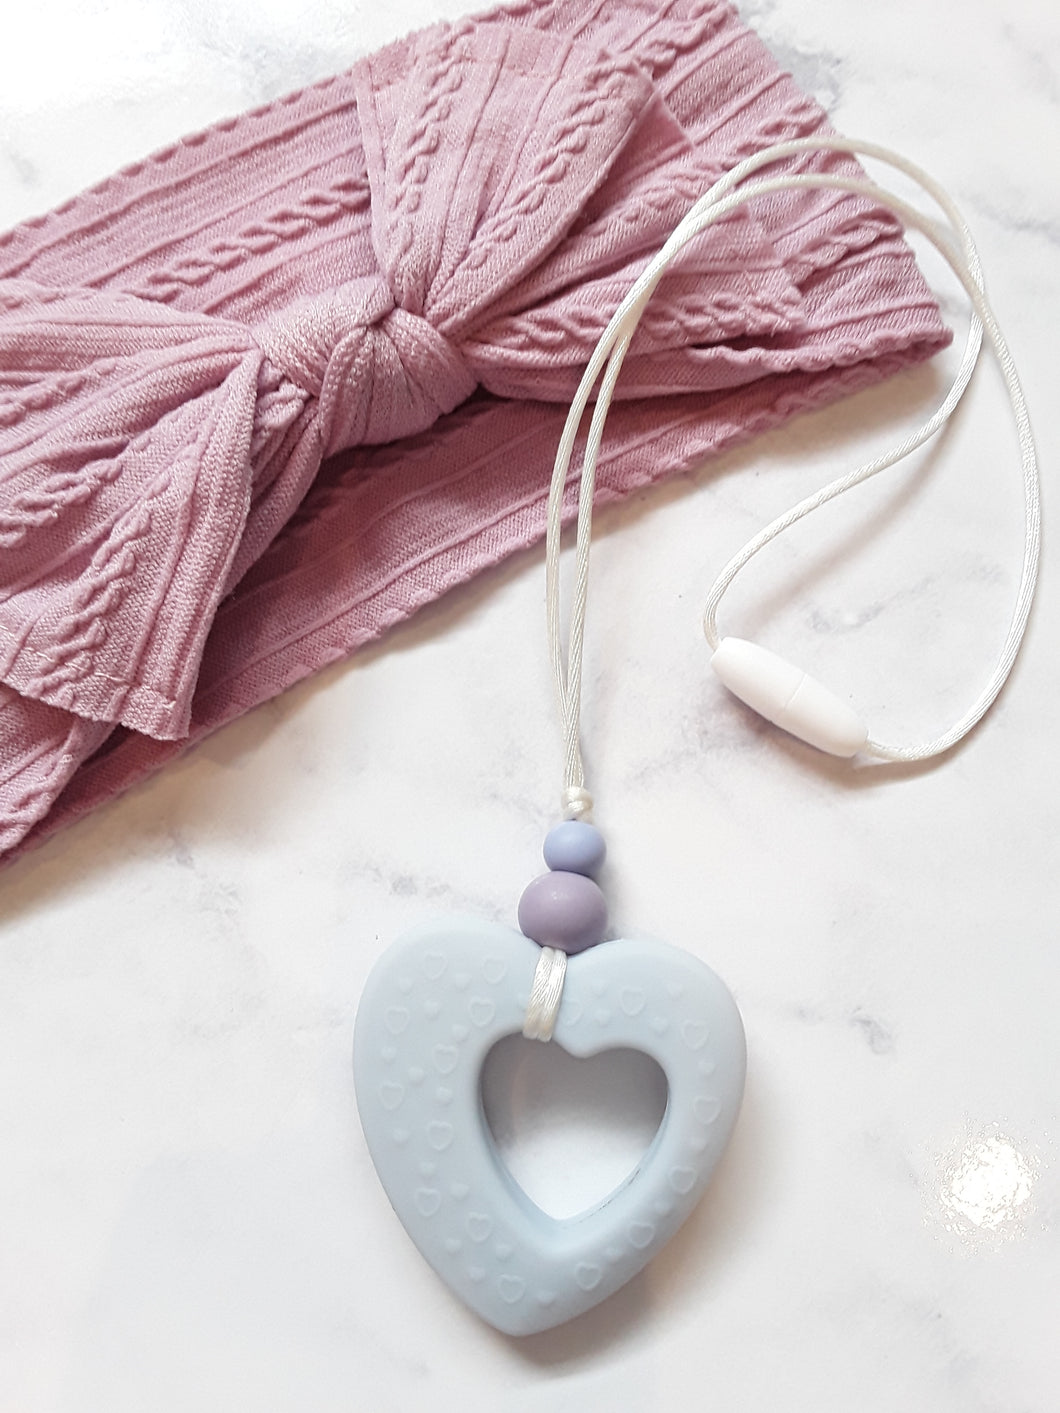 Little Missy Pendant Heart Necklaces